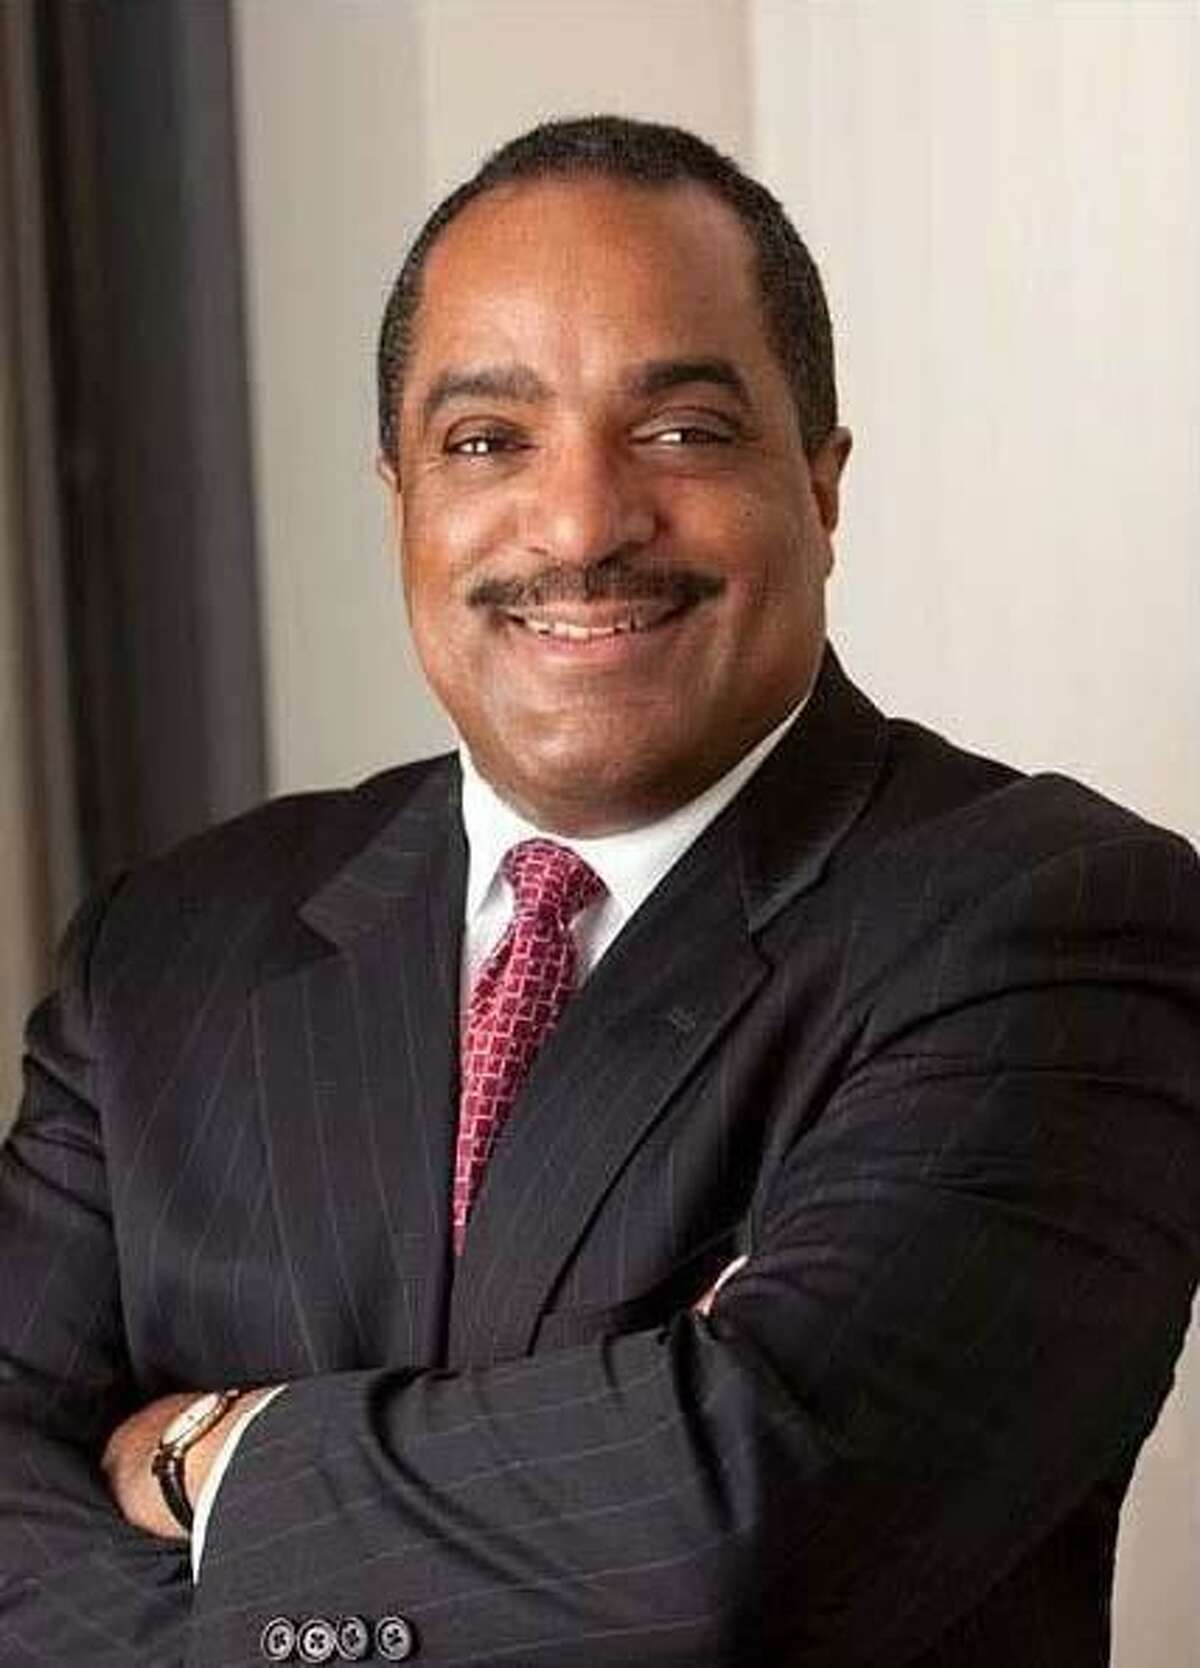 Paul McCraven, a member of the Gateway Community College Foundation, Inc. was elected chairman of the GCCF Board of Directors